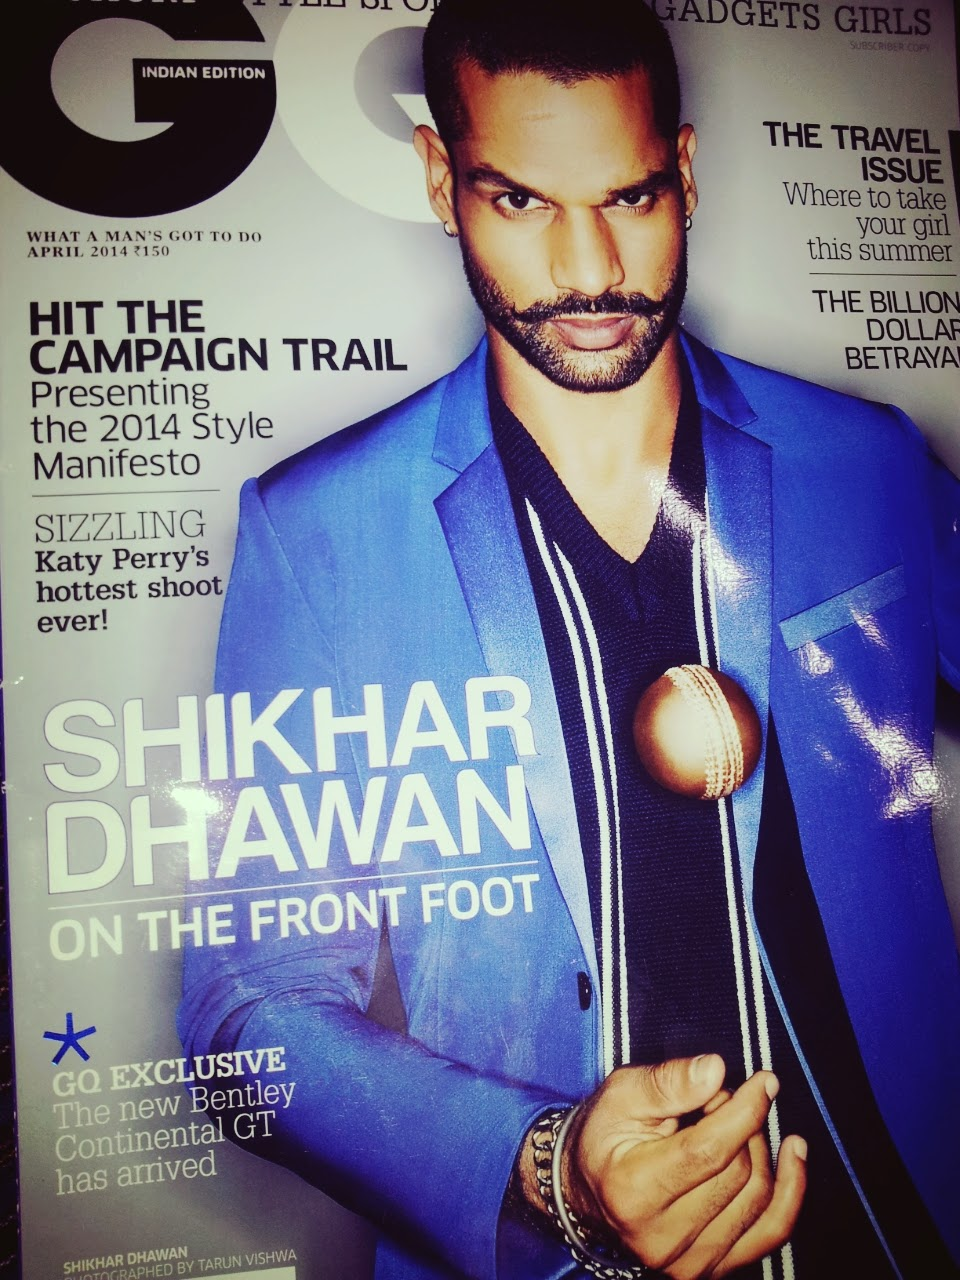 On The Stands | Indian Cricket's Moustache Man Shikhar Dhawan on Cover of GQ April 2014